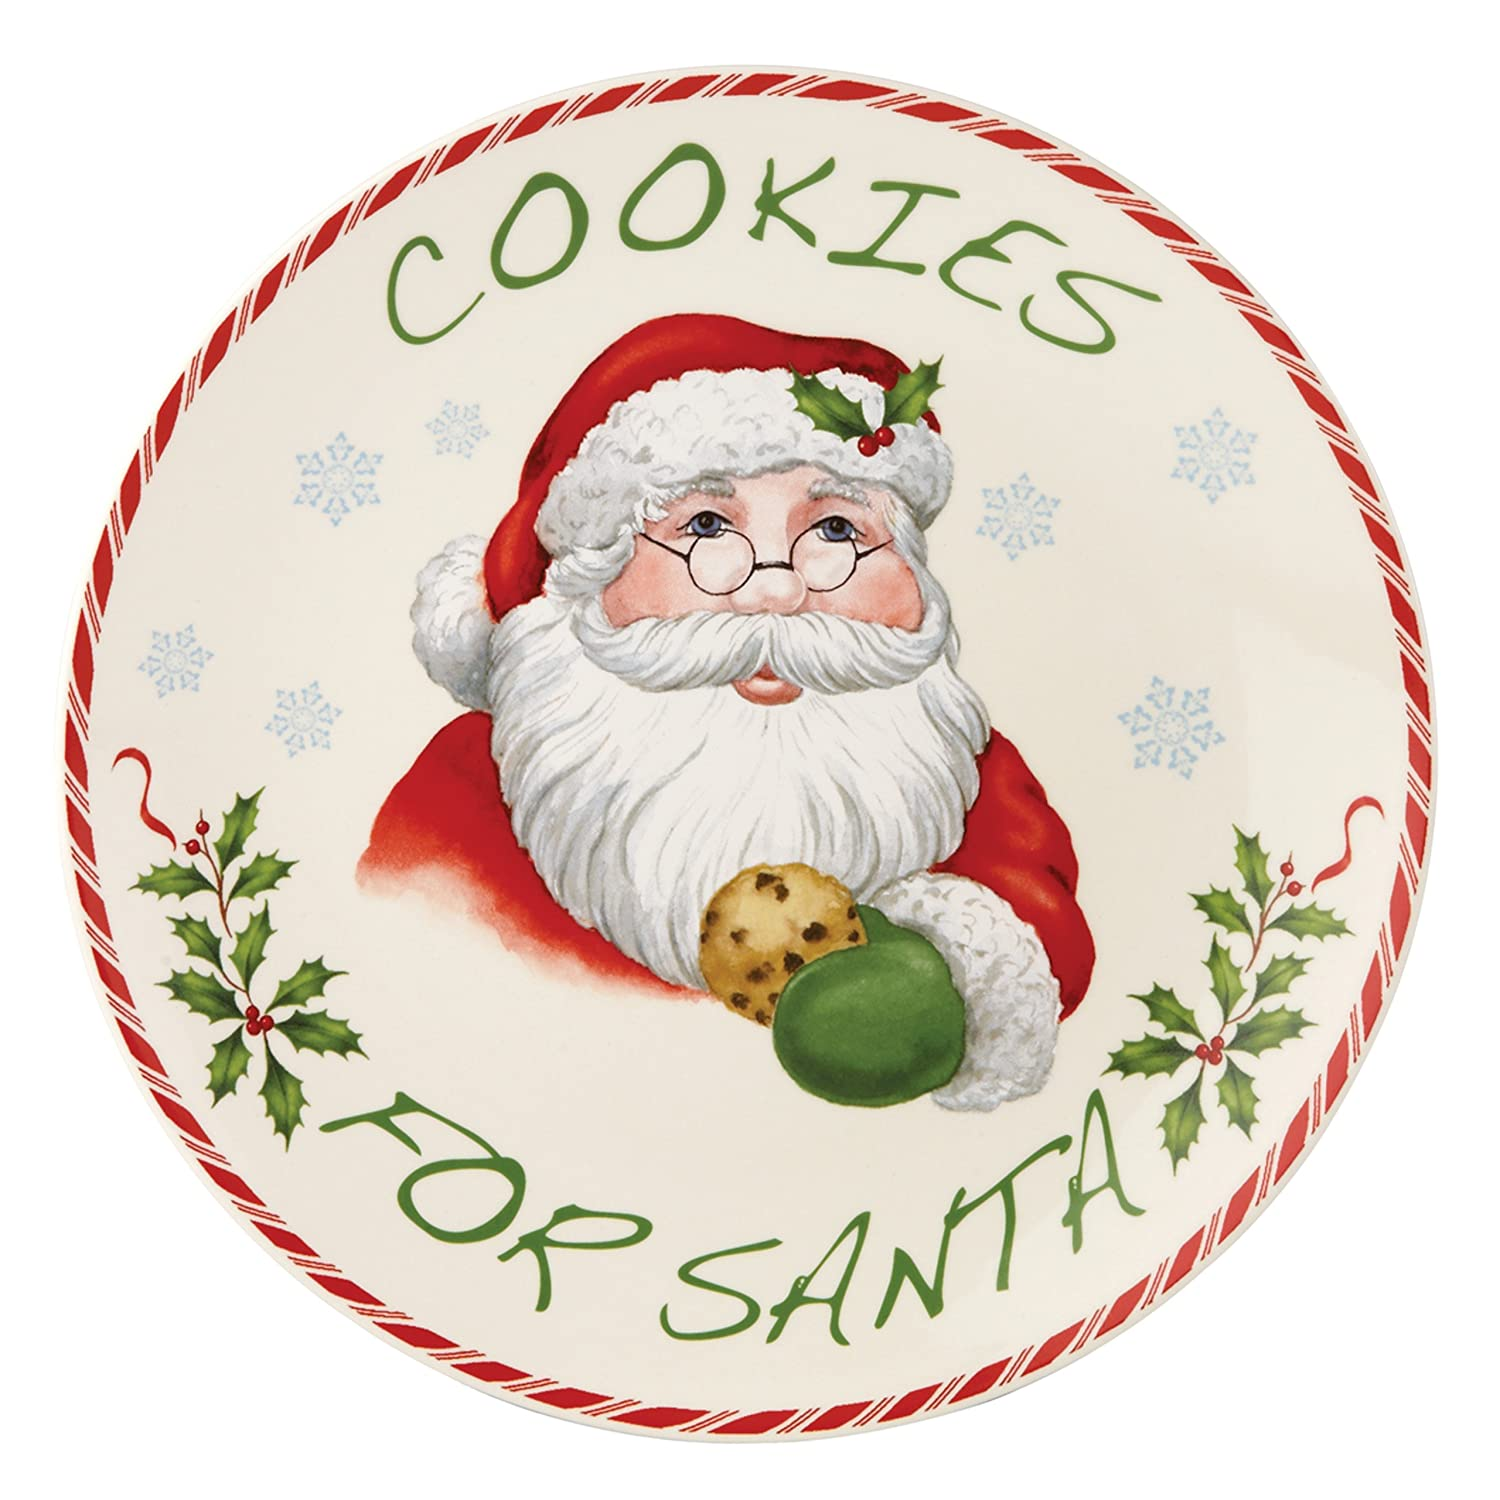 Amazon.com: Lenox Holiday Cookies for Santa Plate: Kitchen & Dining